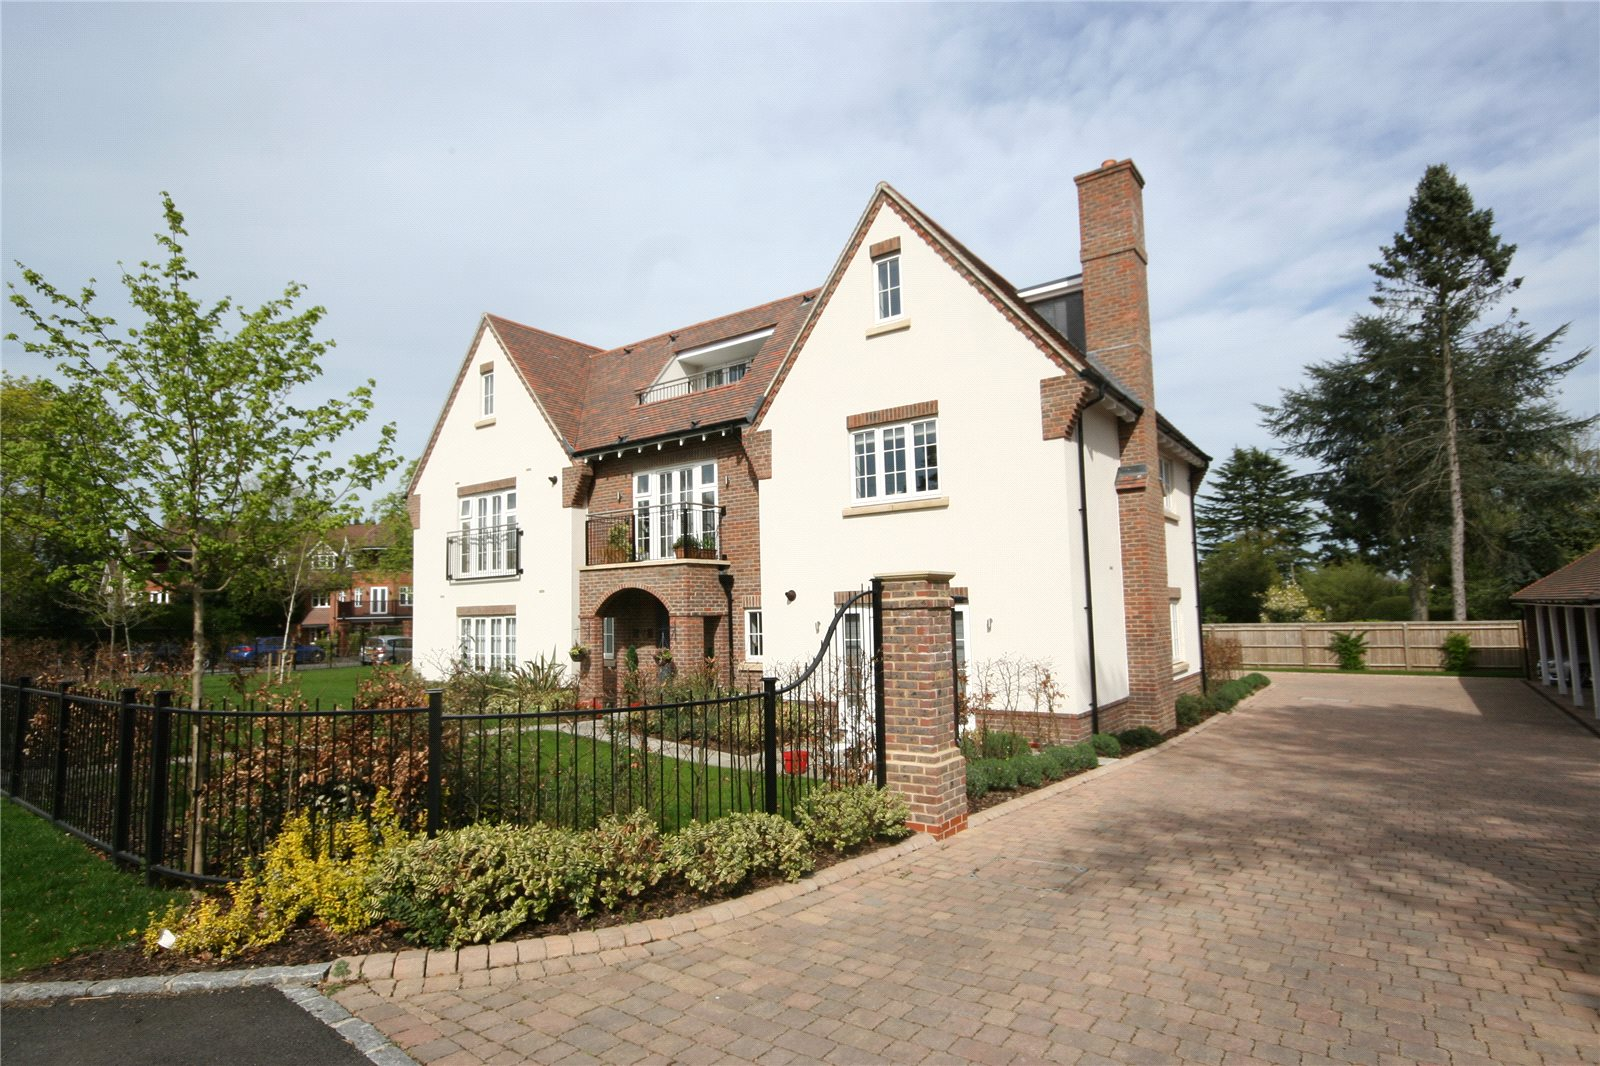 Additional photo for property listing at Aspin Lodge, 38 North Park, Gerrards Cross, Buckinghamshire, SL9 Gerrards Cross, 英格兰